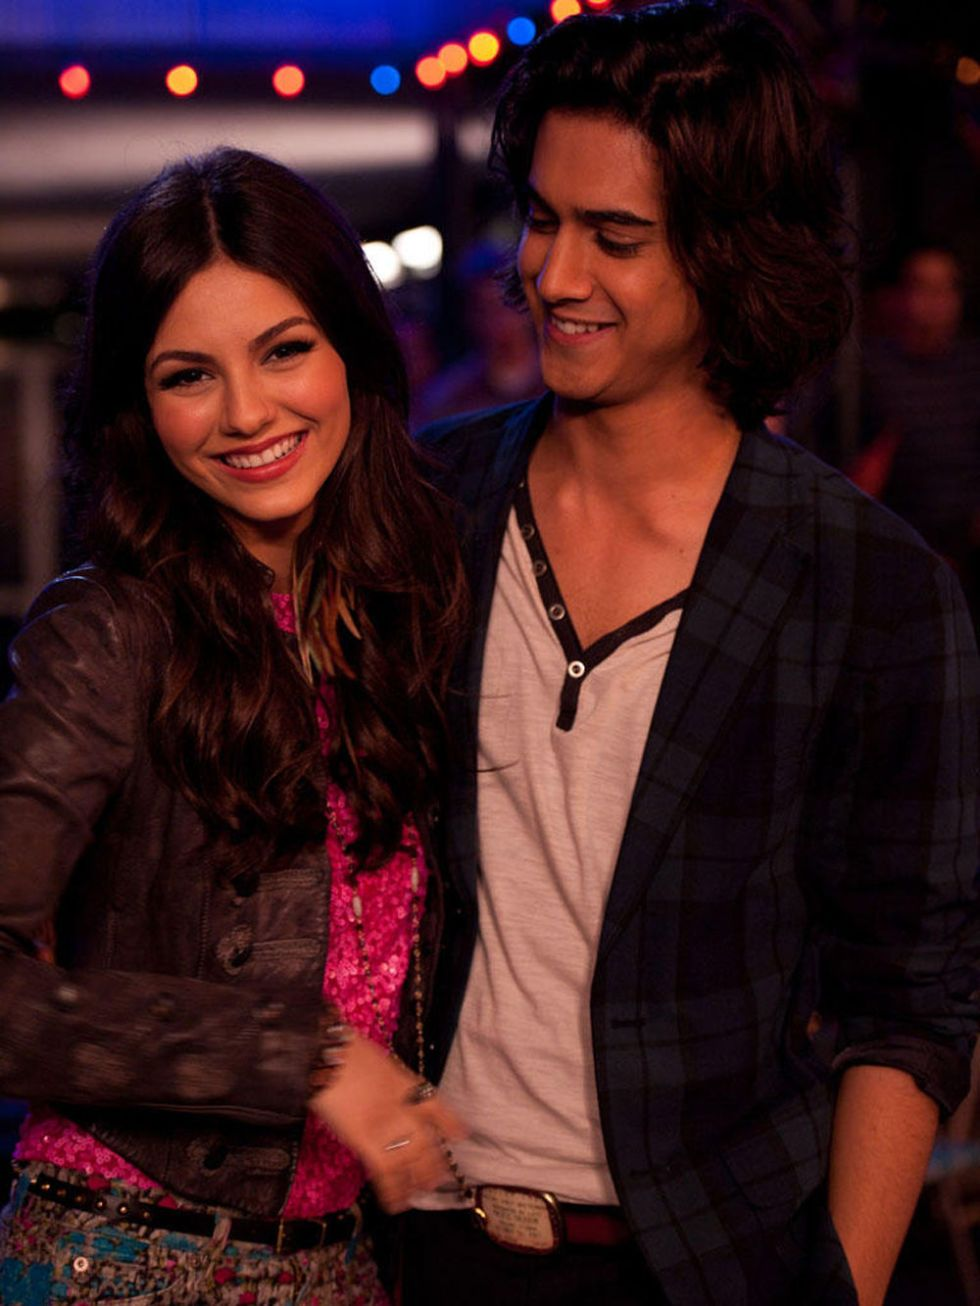 Is Beck And Jade From Victorious Dating In Real Life